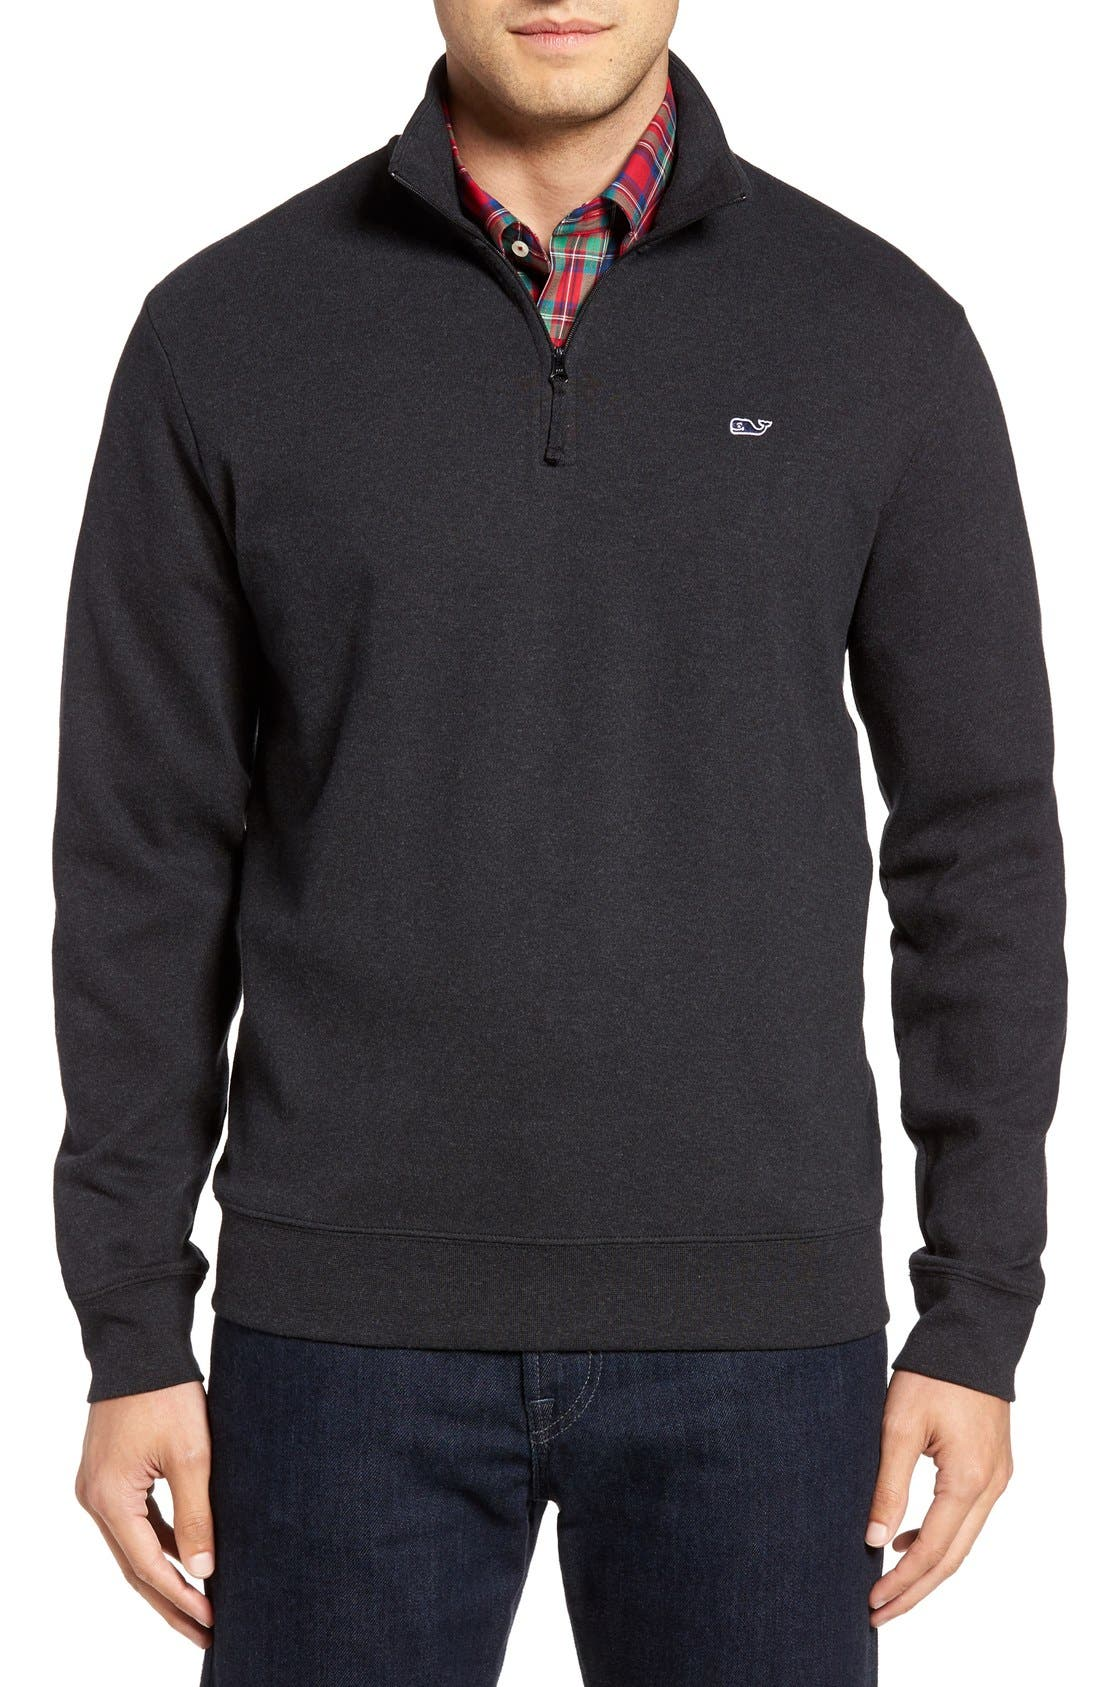 Alternate Image 1 Selected - Vineyard Vines Quarter Zip Sweater